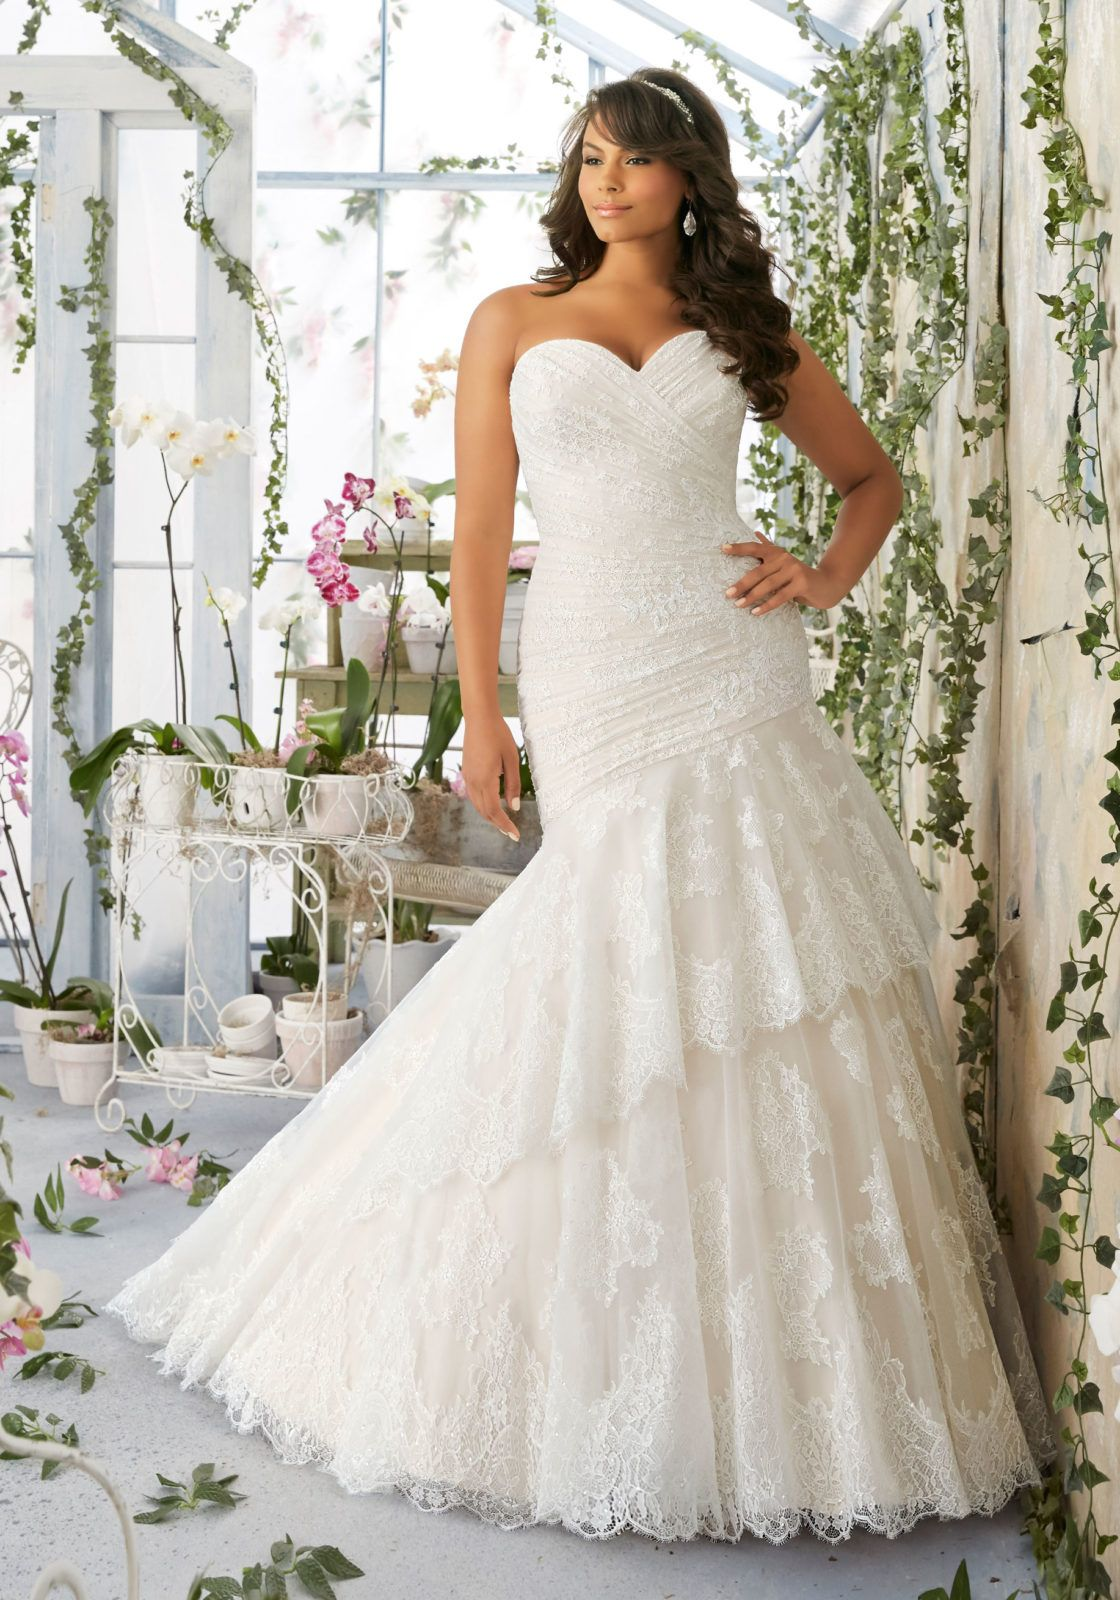 Asymmetrically draped chantilly lace wedding dress with scalloped